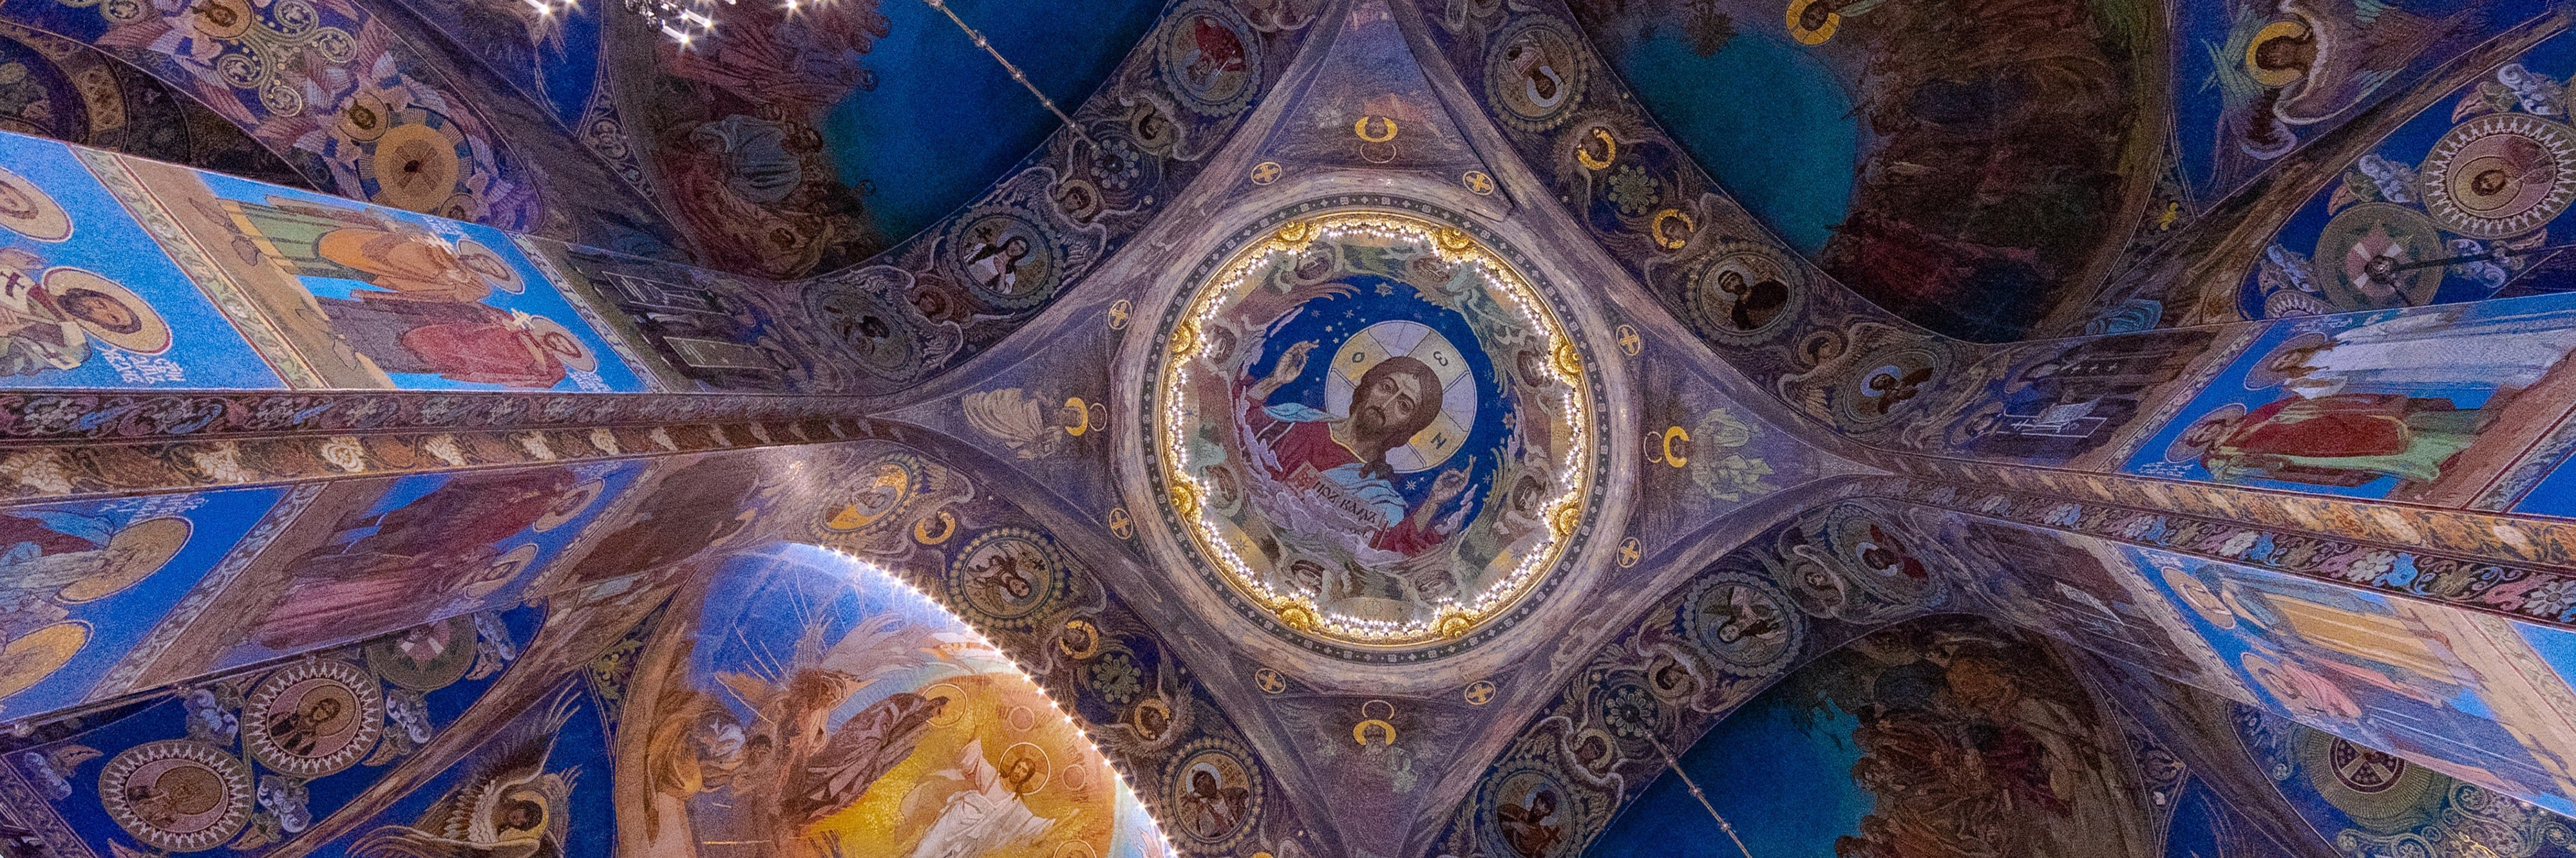 interior of the Church of the Savior on Spilled Blood, Saint Petersburg, Russia